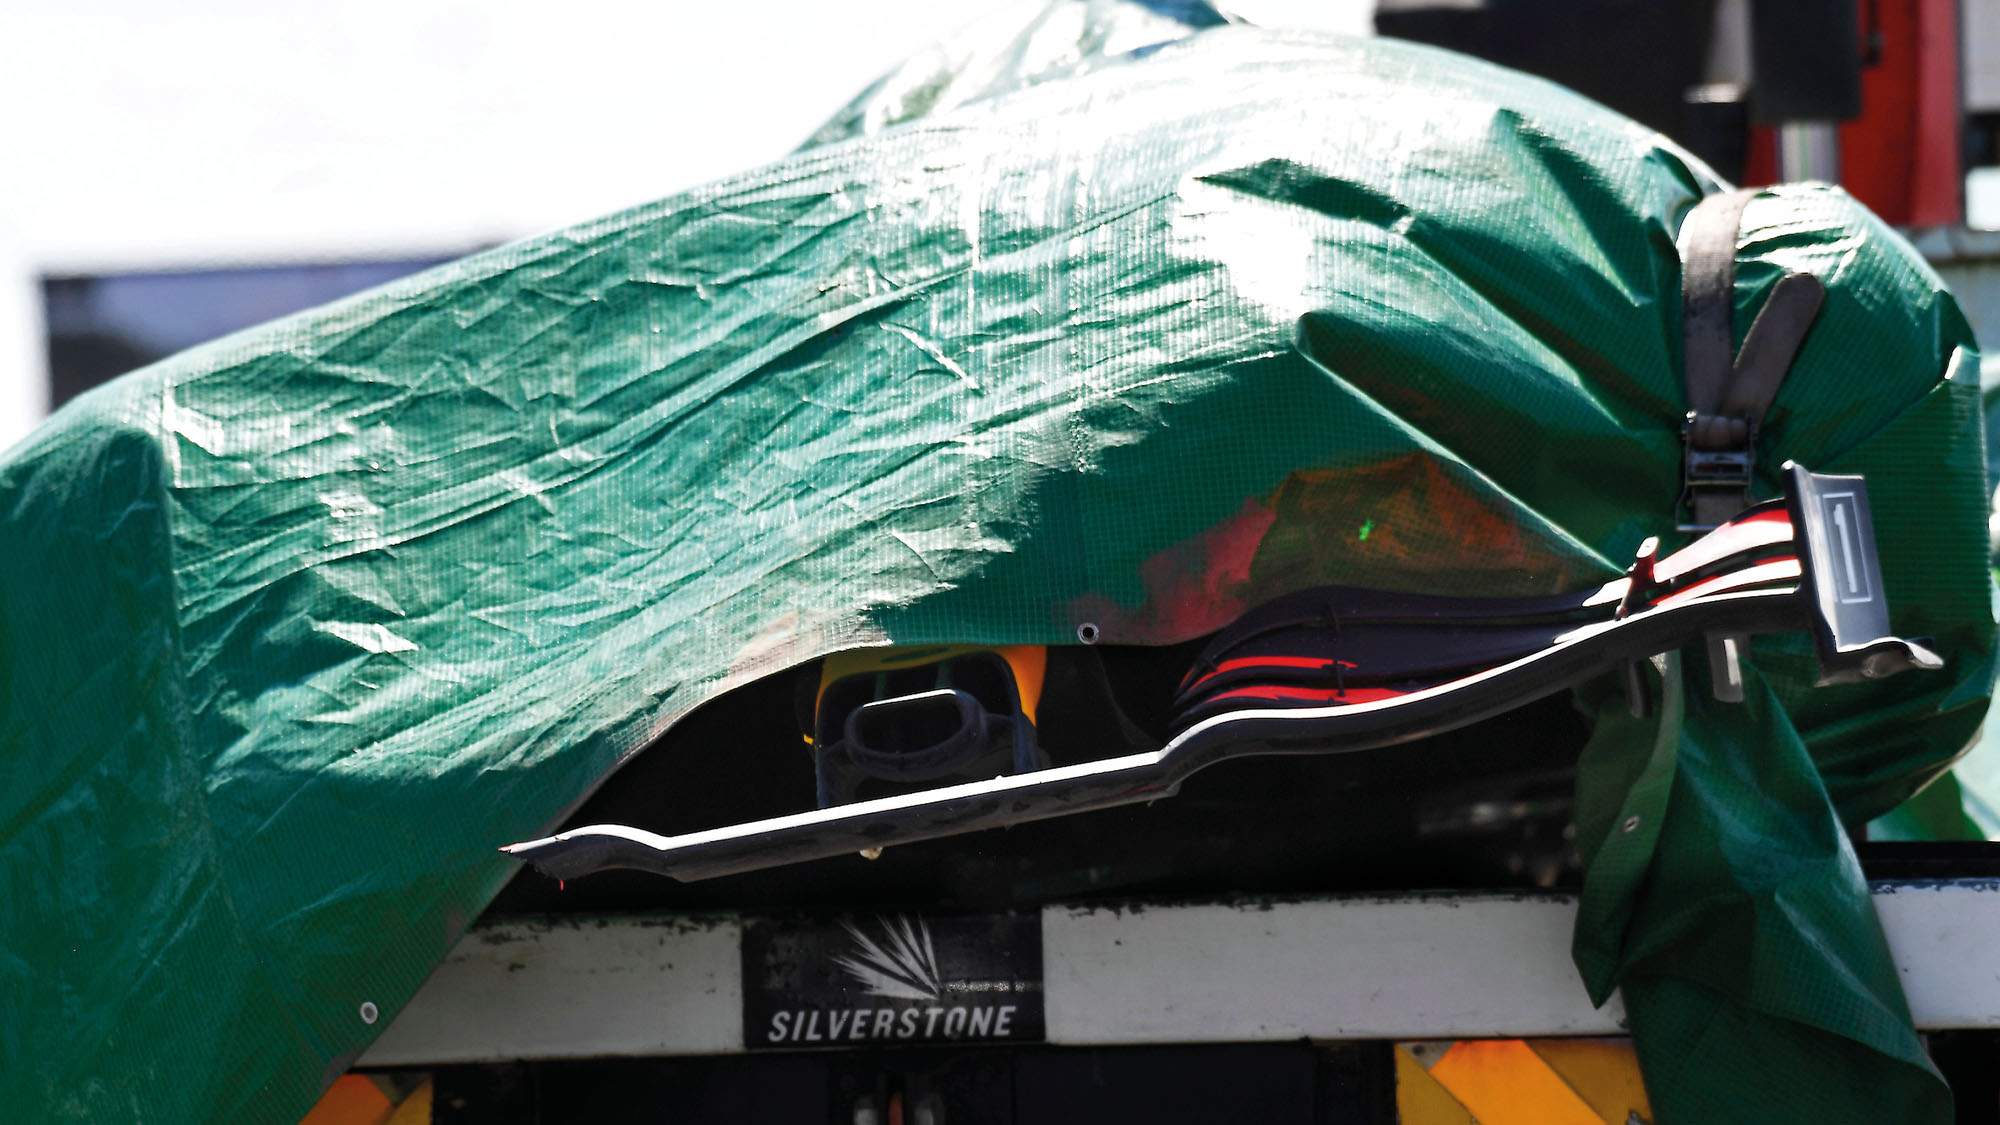 Wreckage of Max Verstappens Red Bull at the 2021 British Grand Prix